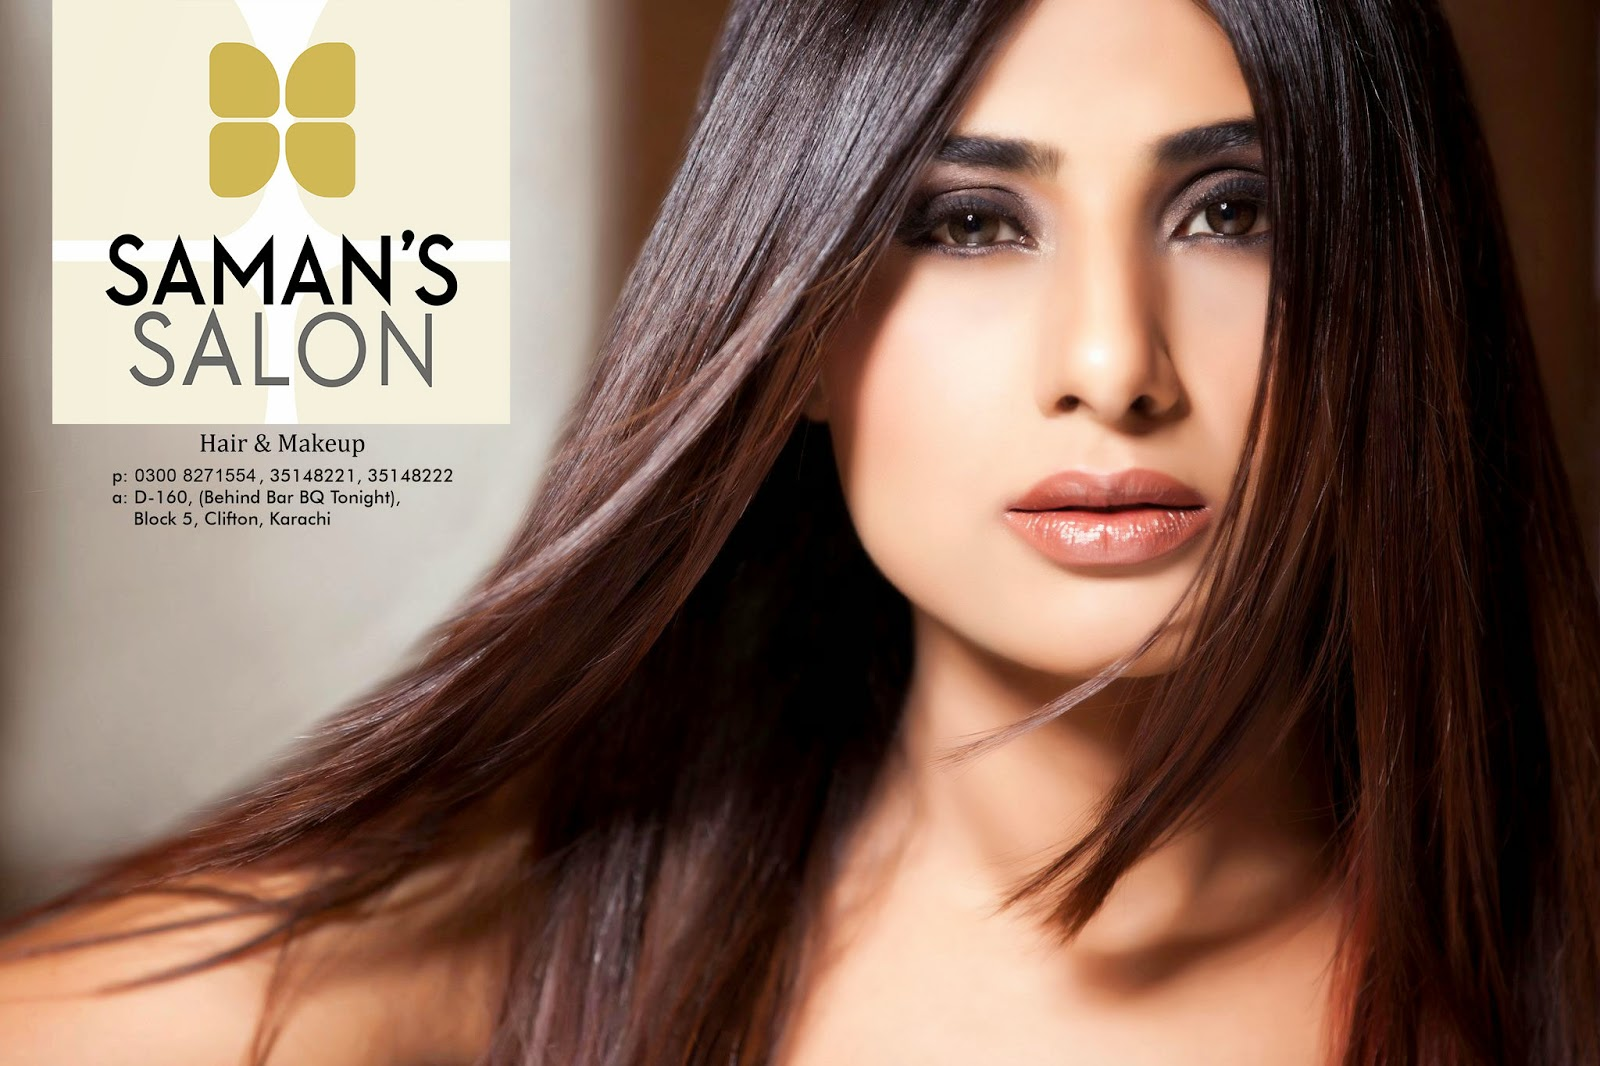 saman's salon hair makeup karachi